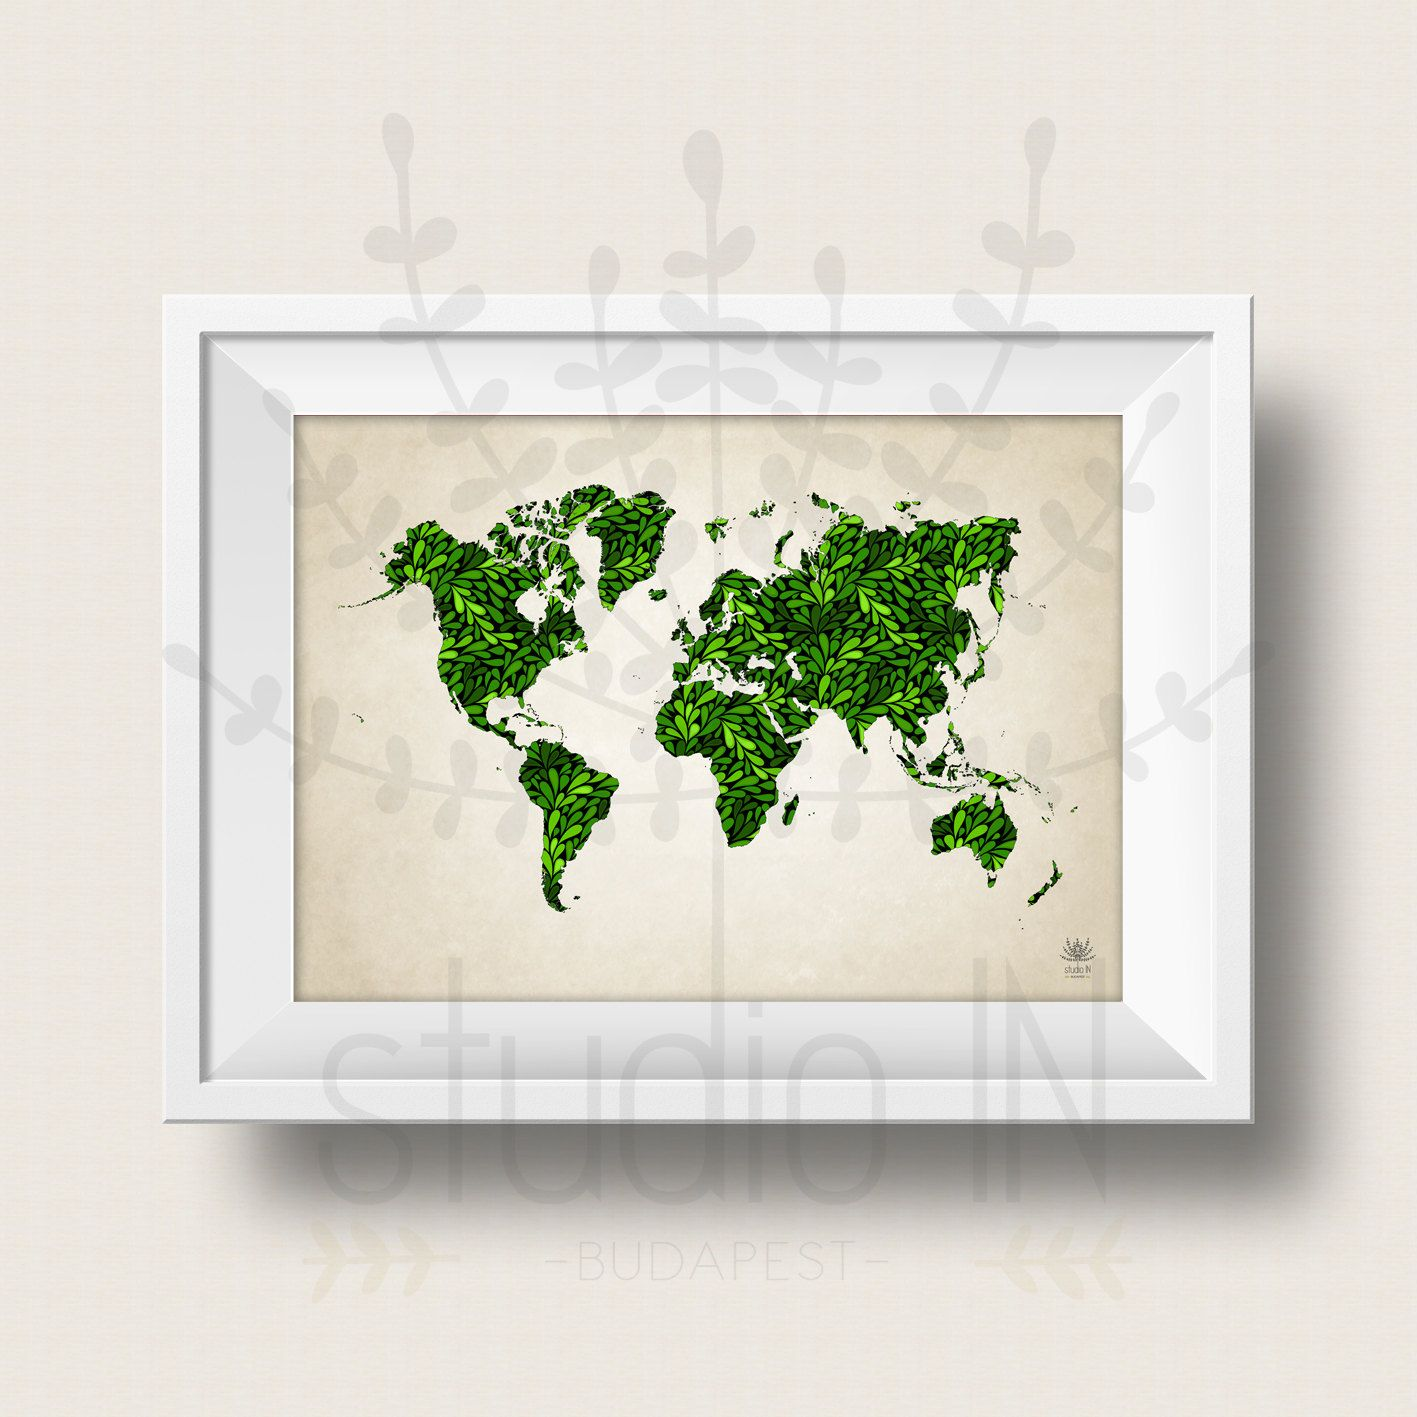 WOLRD MAP POSTER Green World Map Art Large World Map Print - World map poster large download